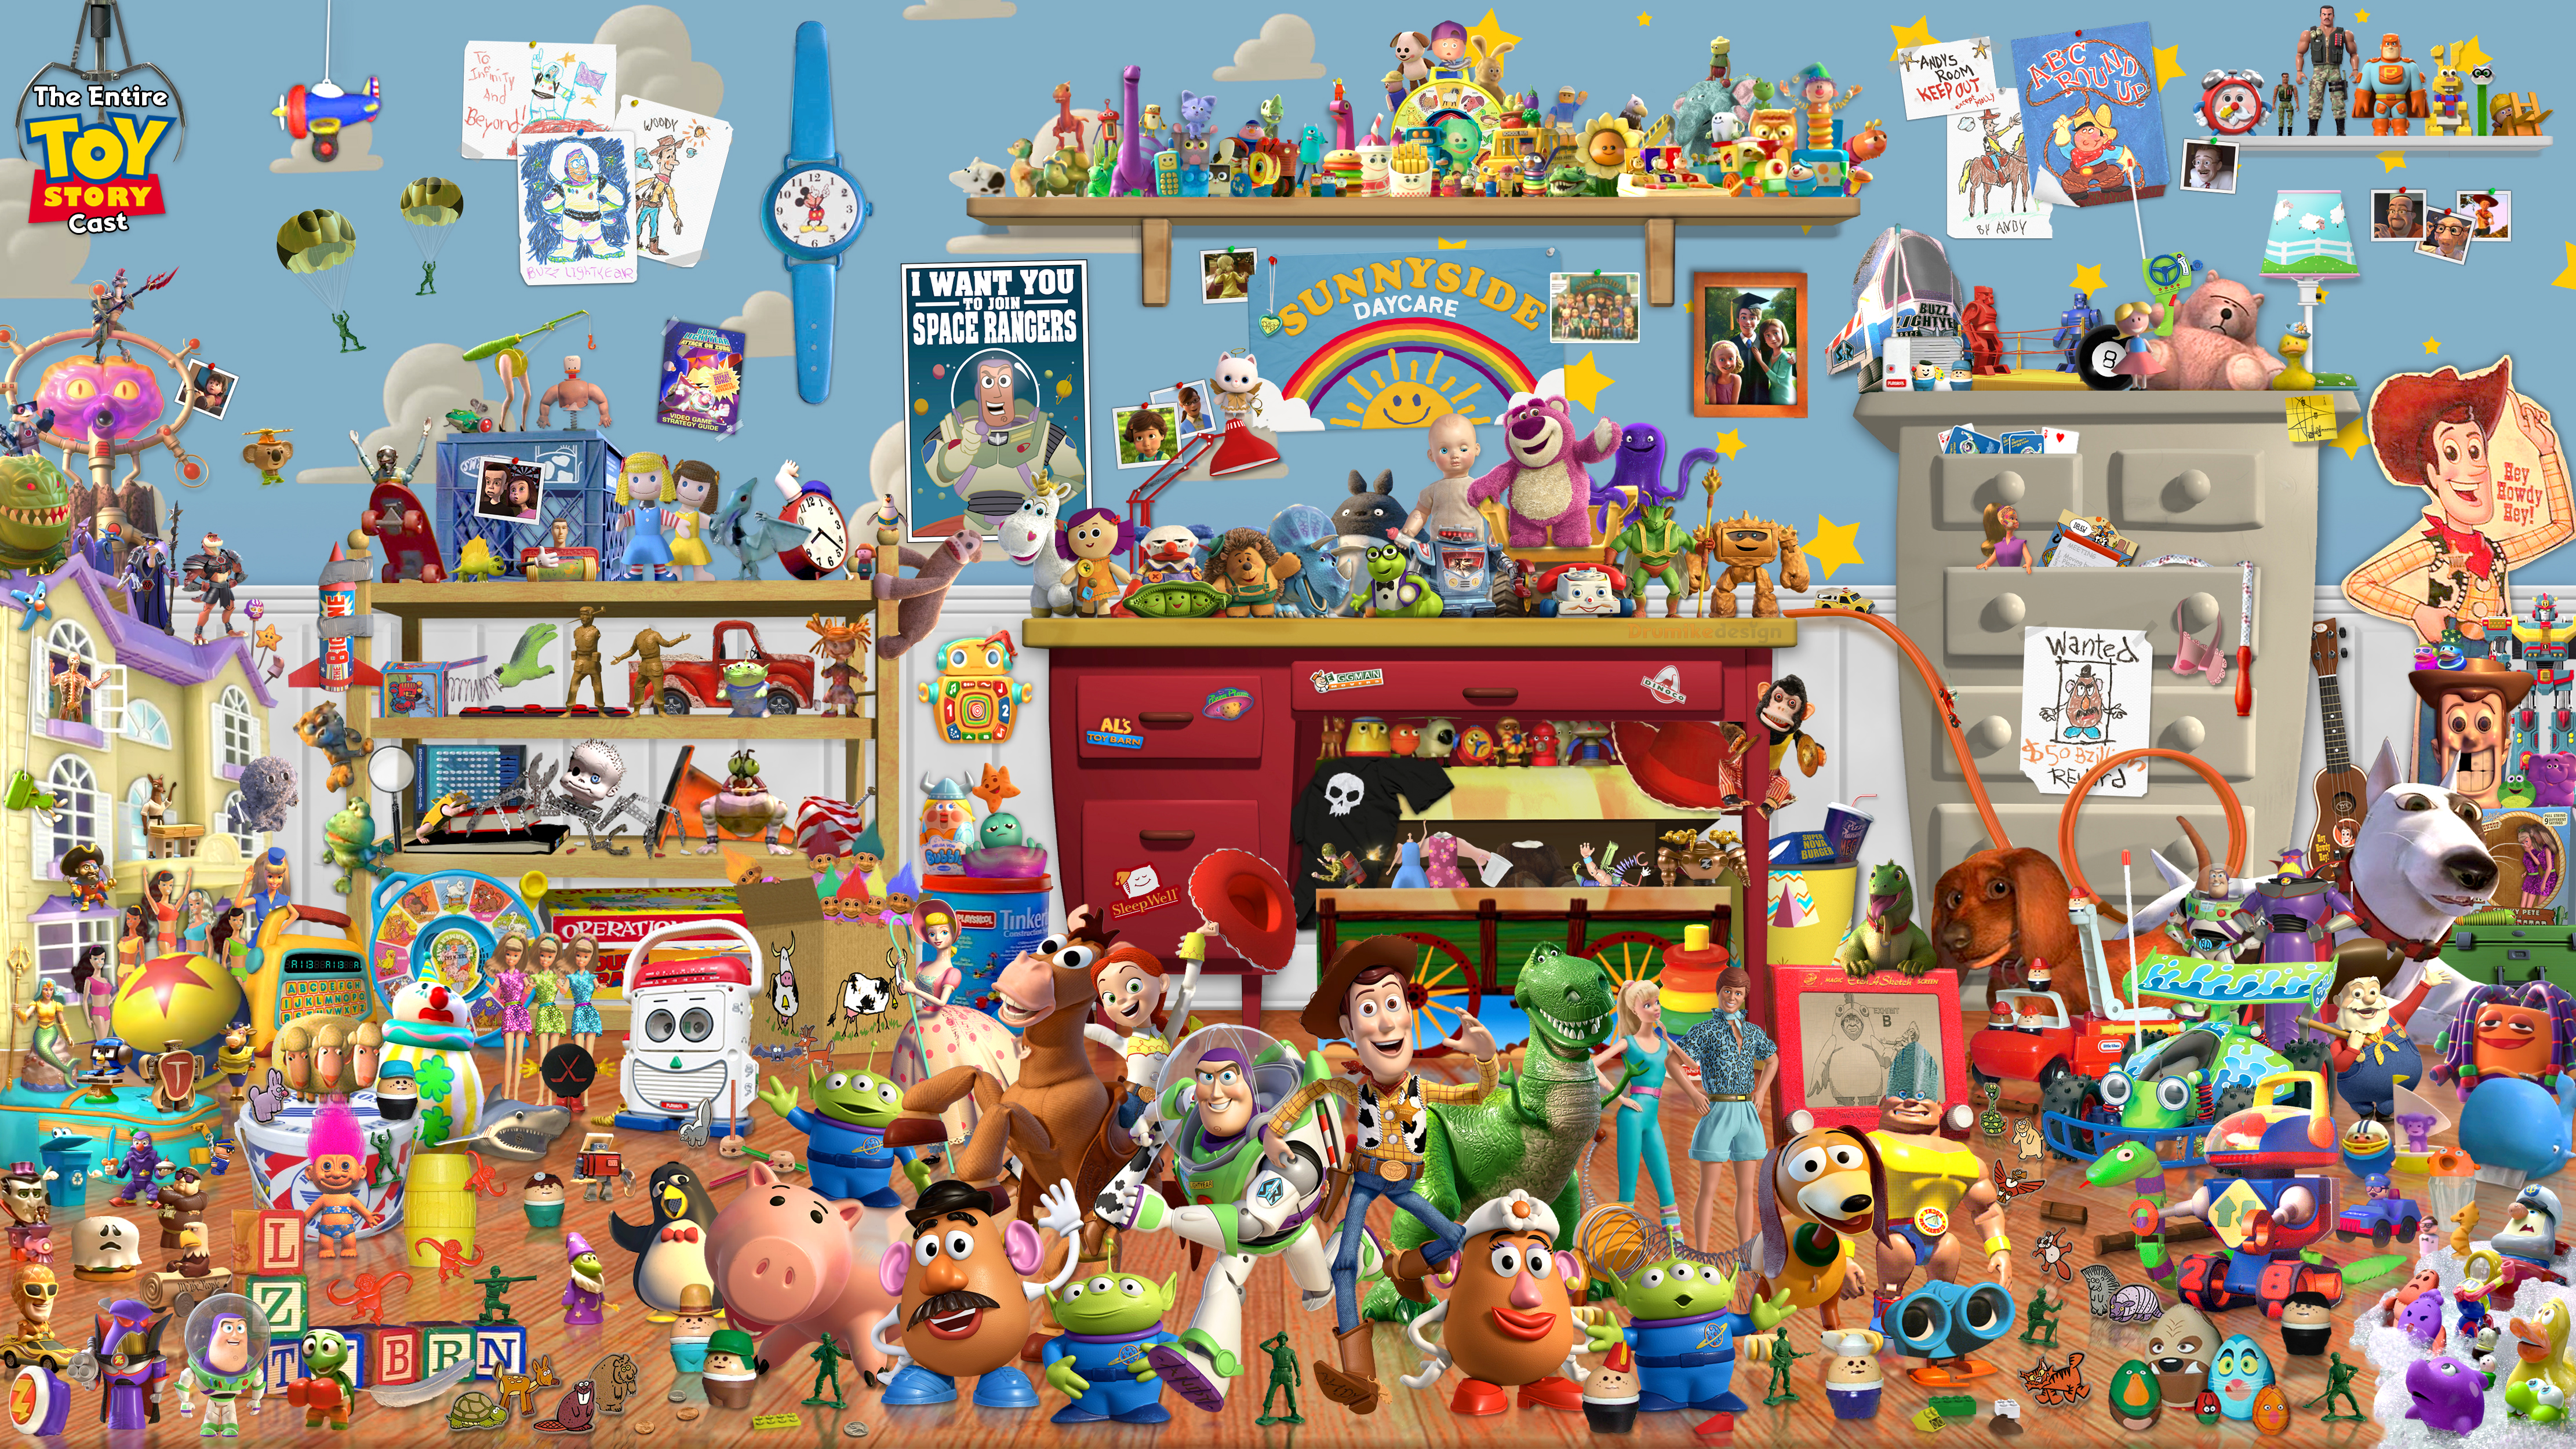 All Toy Story 3 Games : Here s every single quot toy story character in one picture